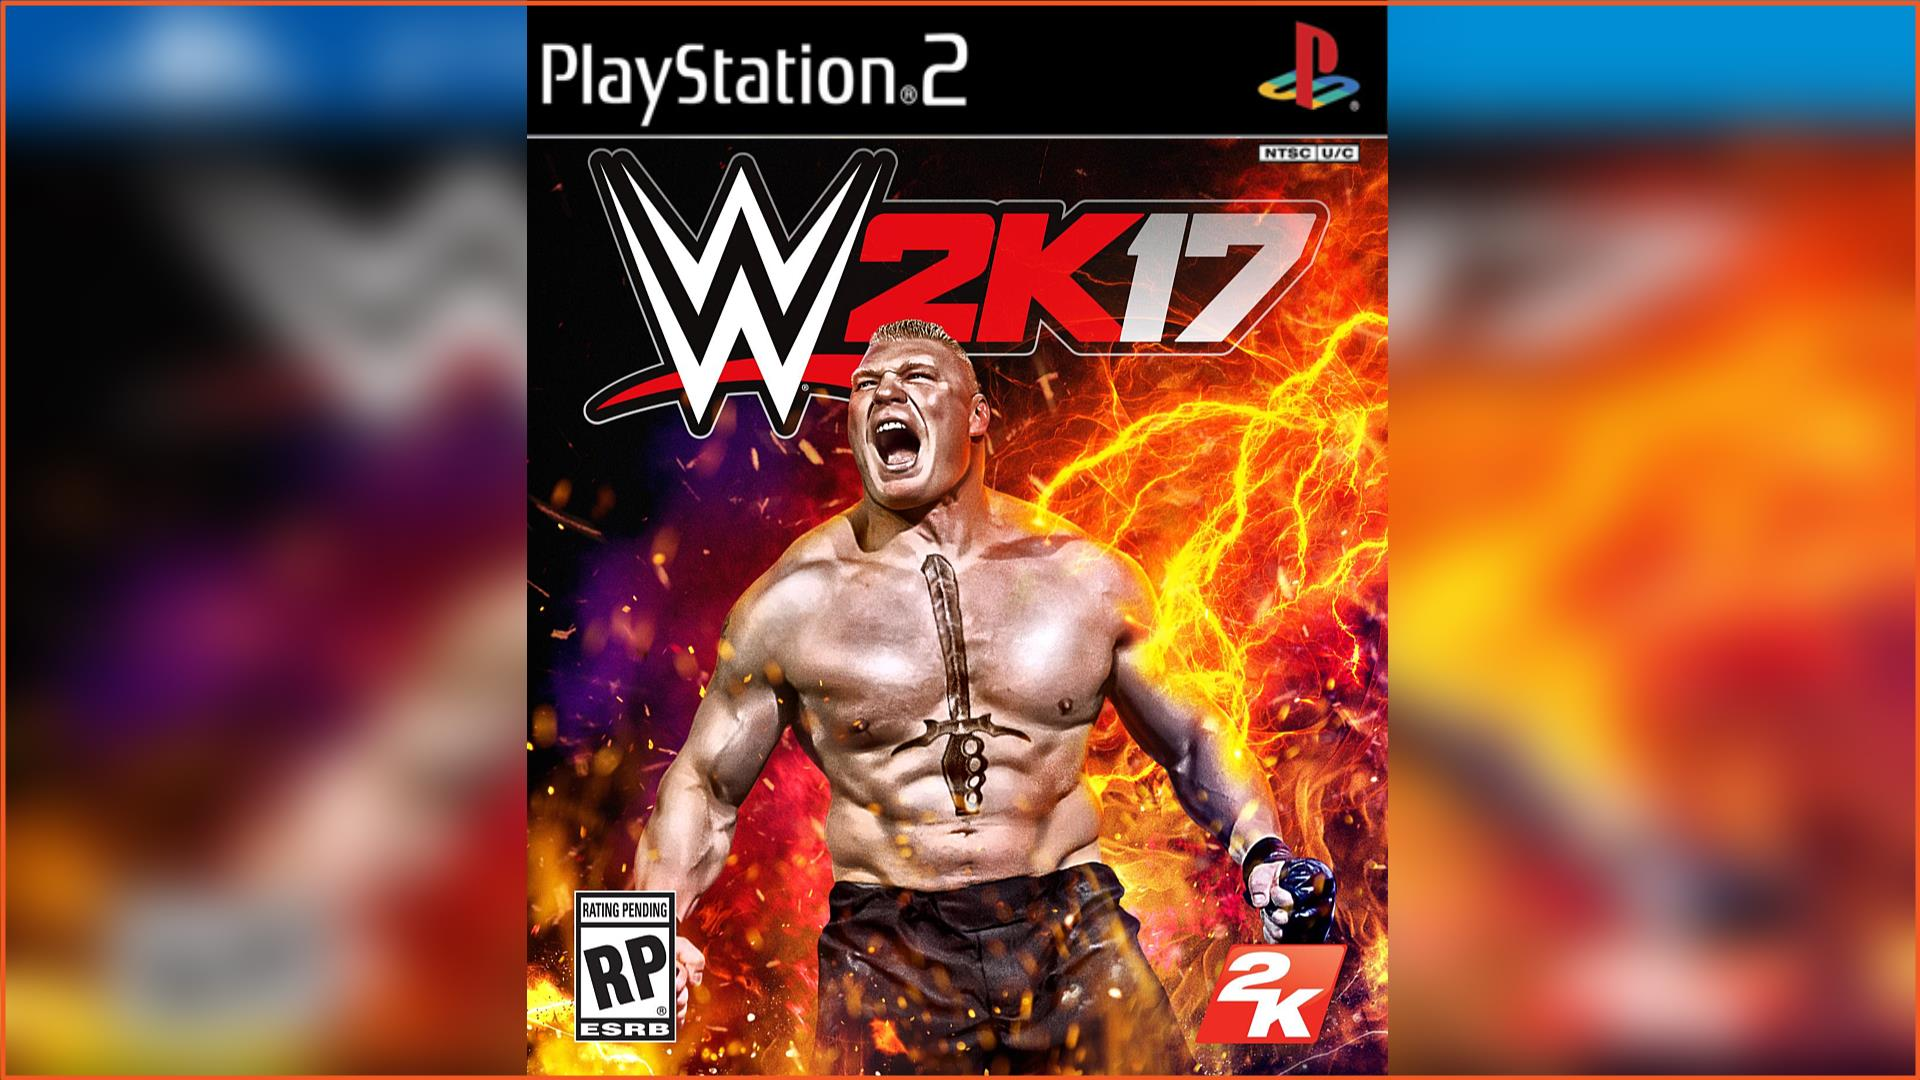 WWE 2K17 PS2 ISO Download